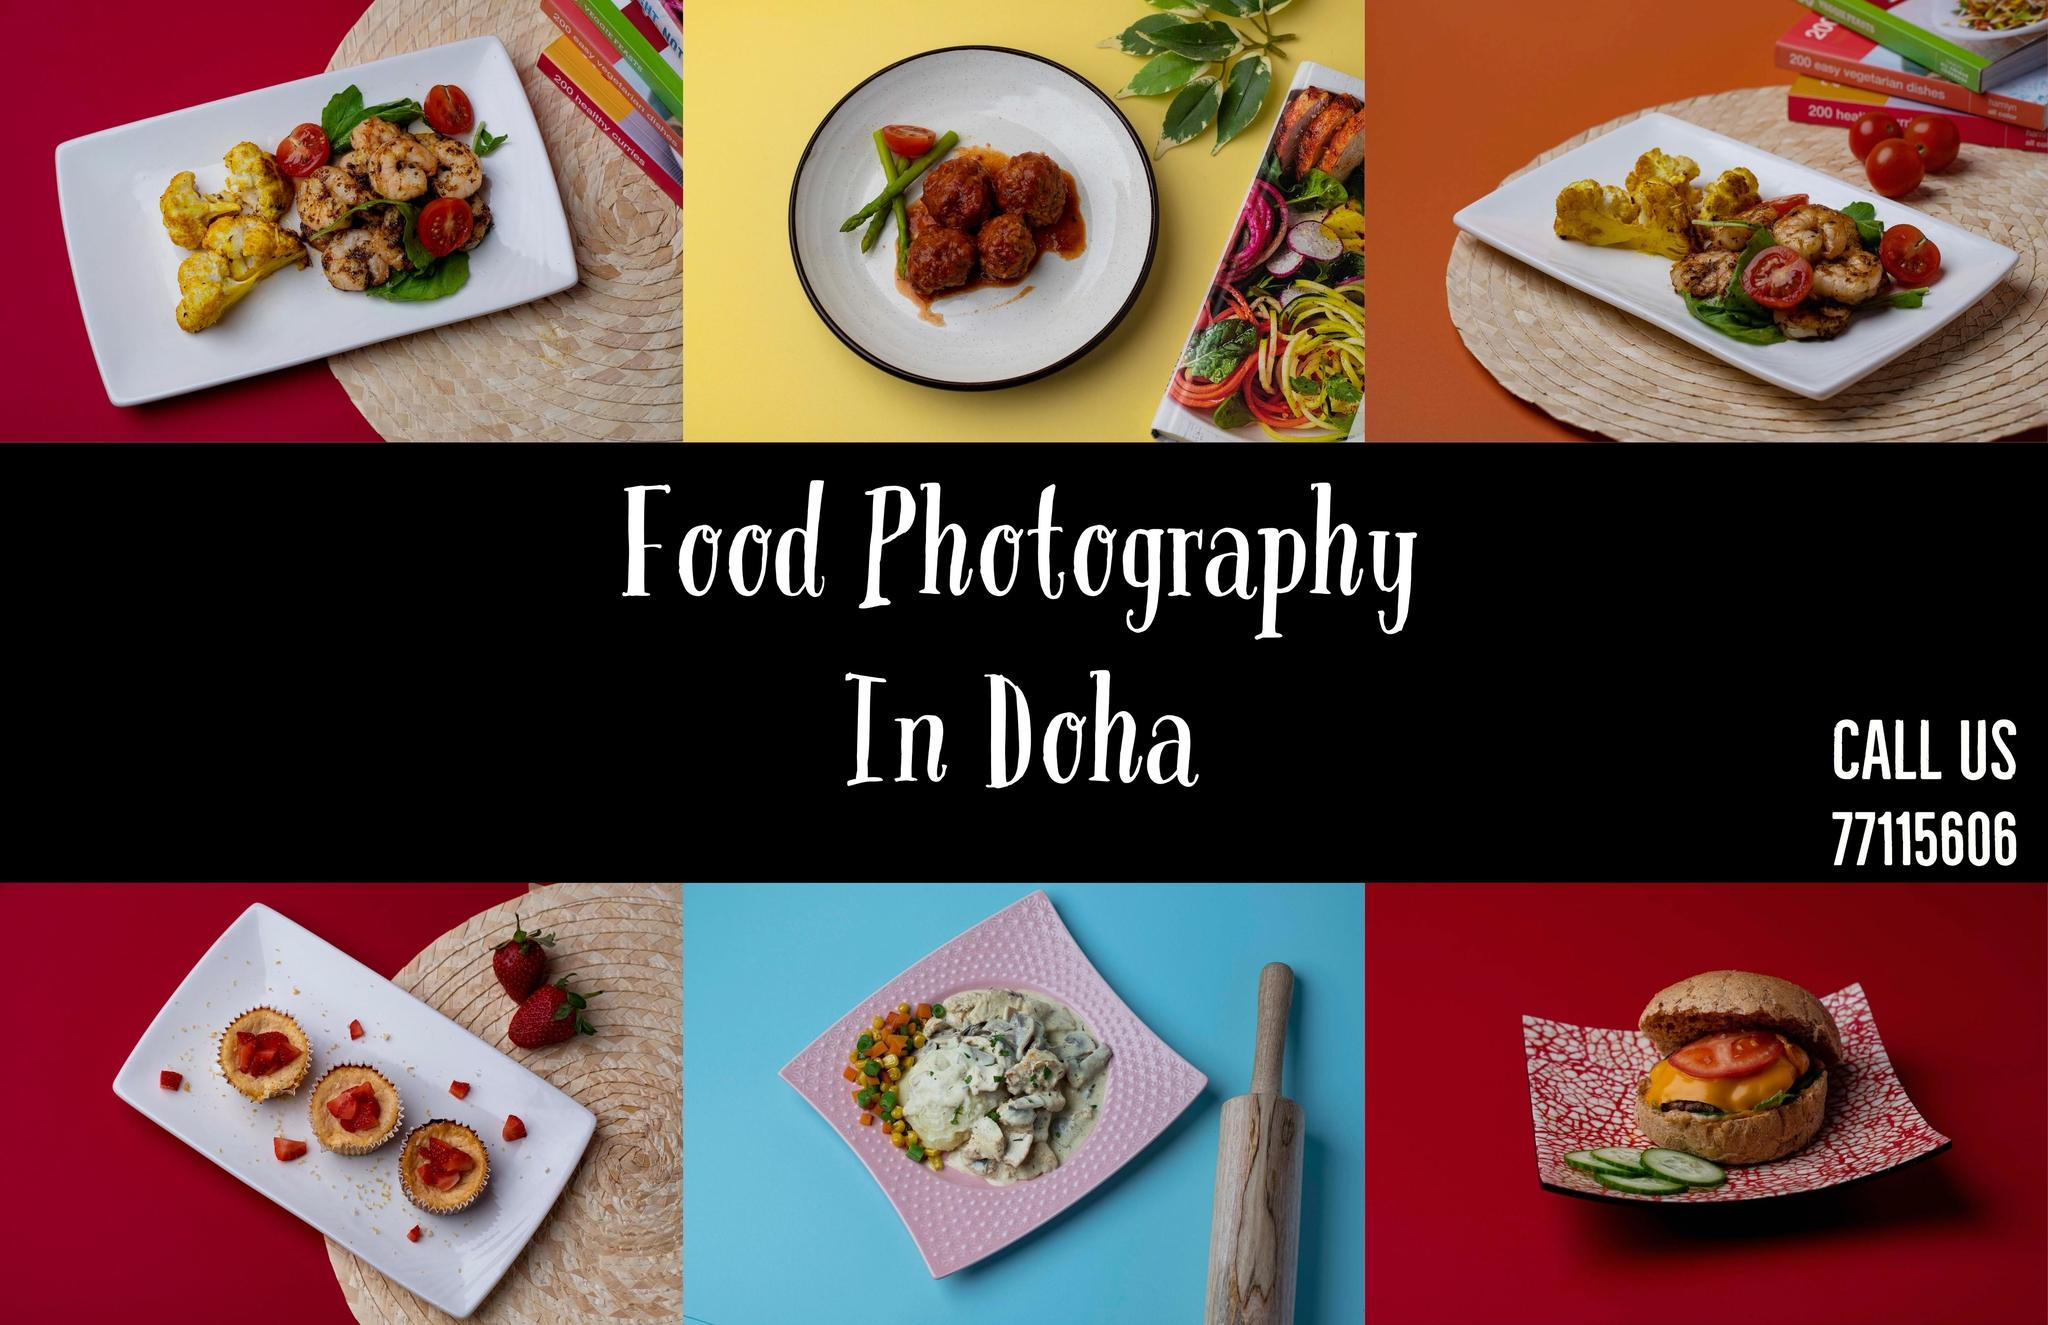 Photography & Videography in Doha Call Whatsap 771